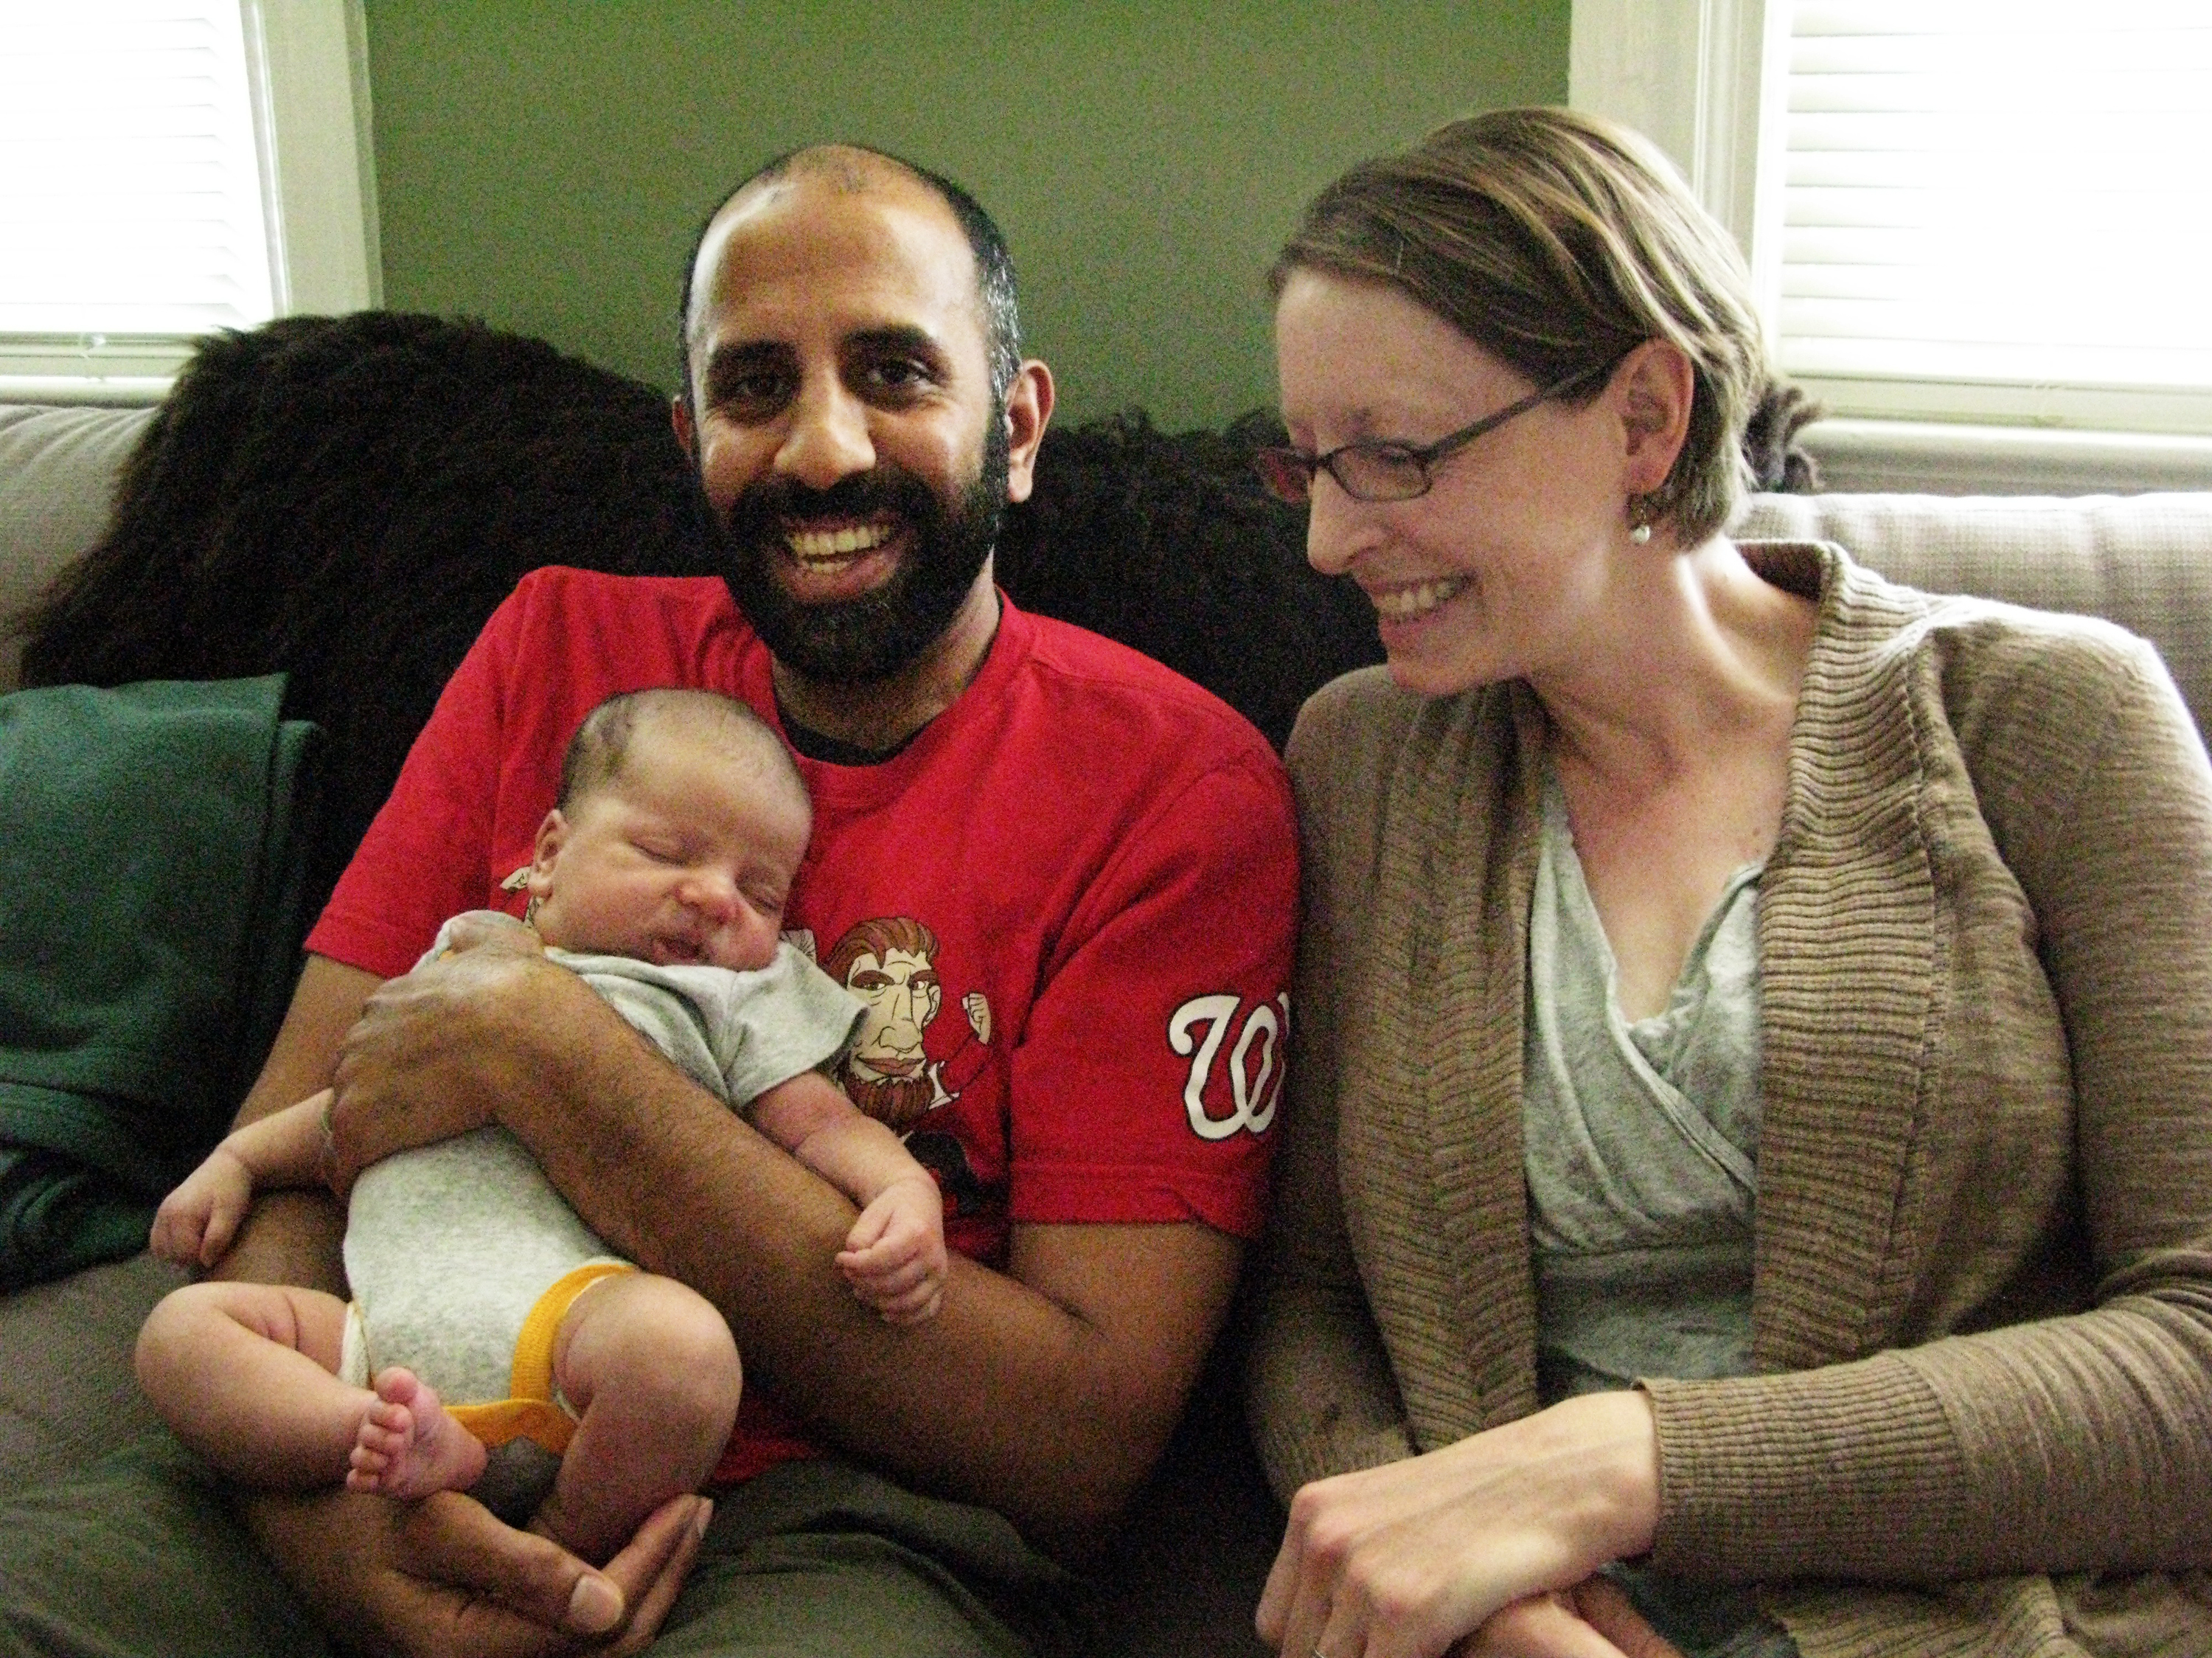 More Dads Want Paternity Leave. Getting It Is A Different Matter